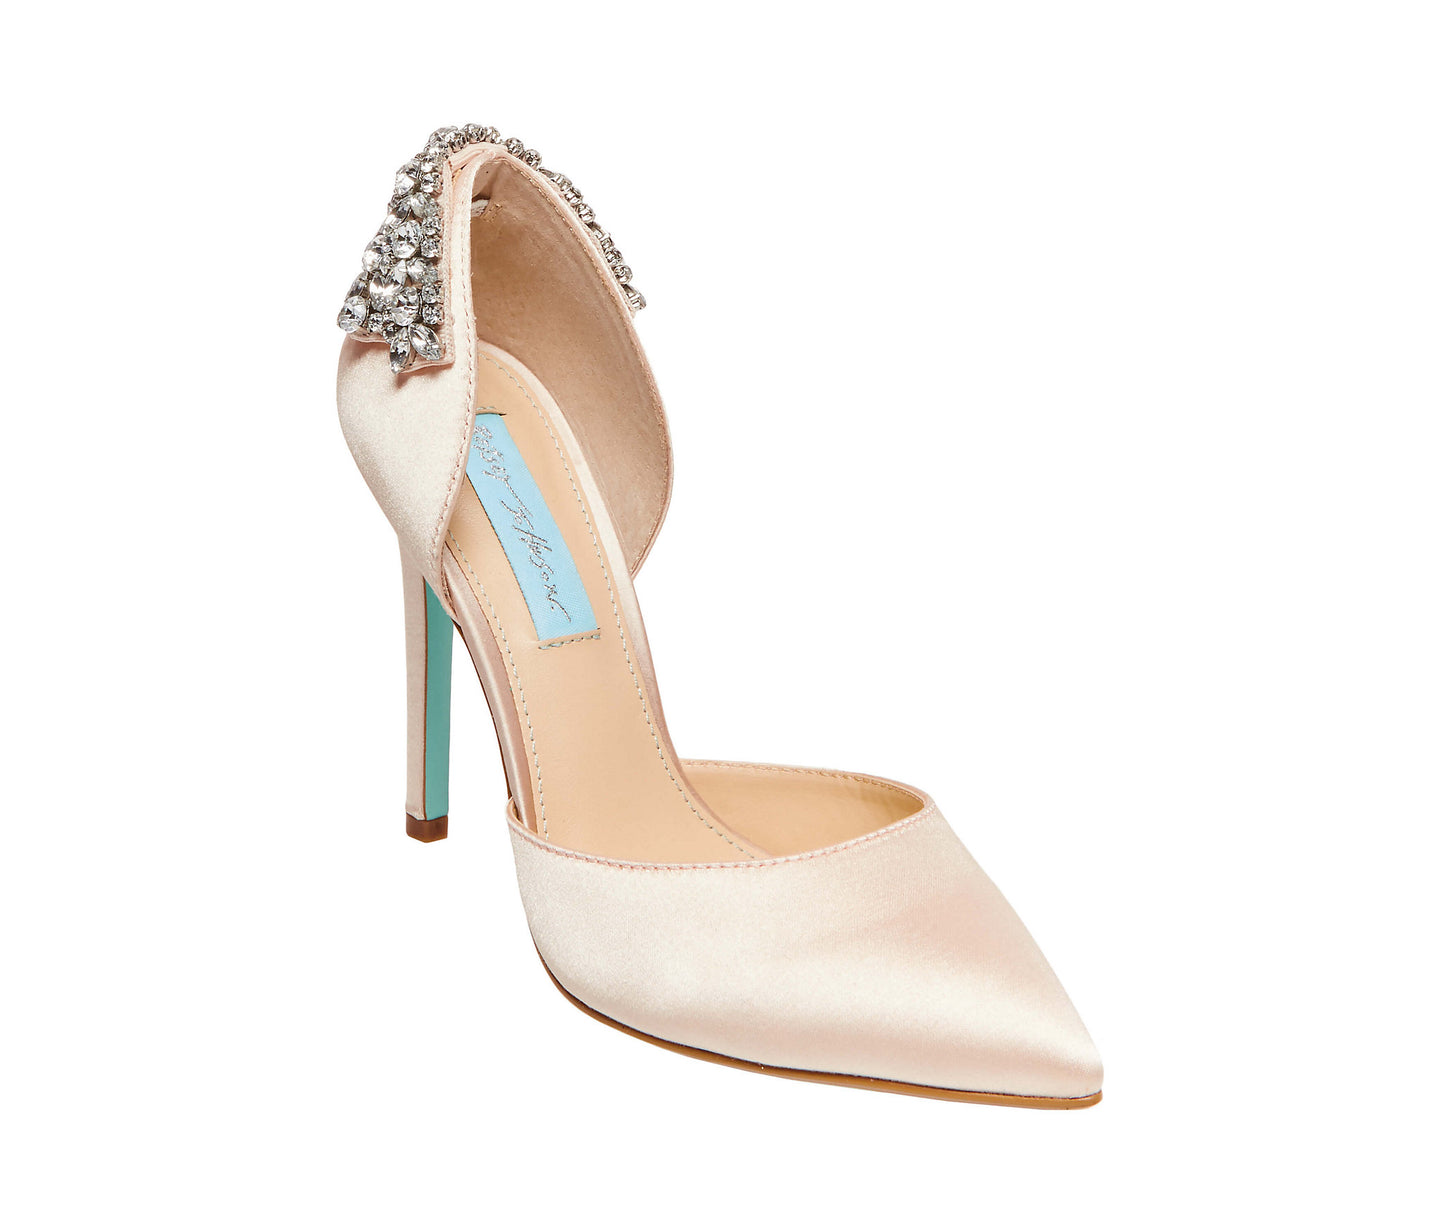 SB-ROSIE CHAMPAGNE SATIN - SHOES - Betsey Johnson